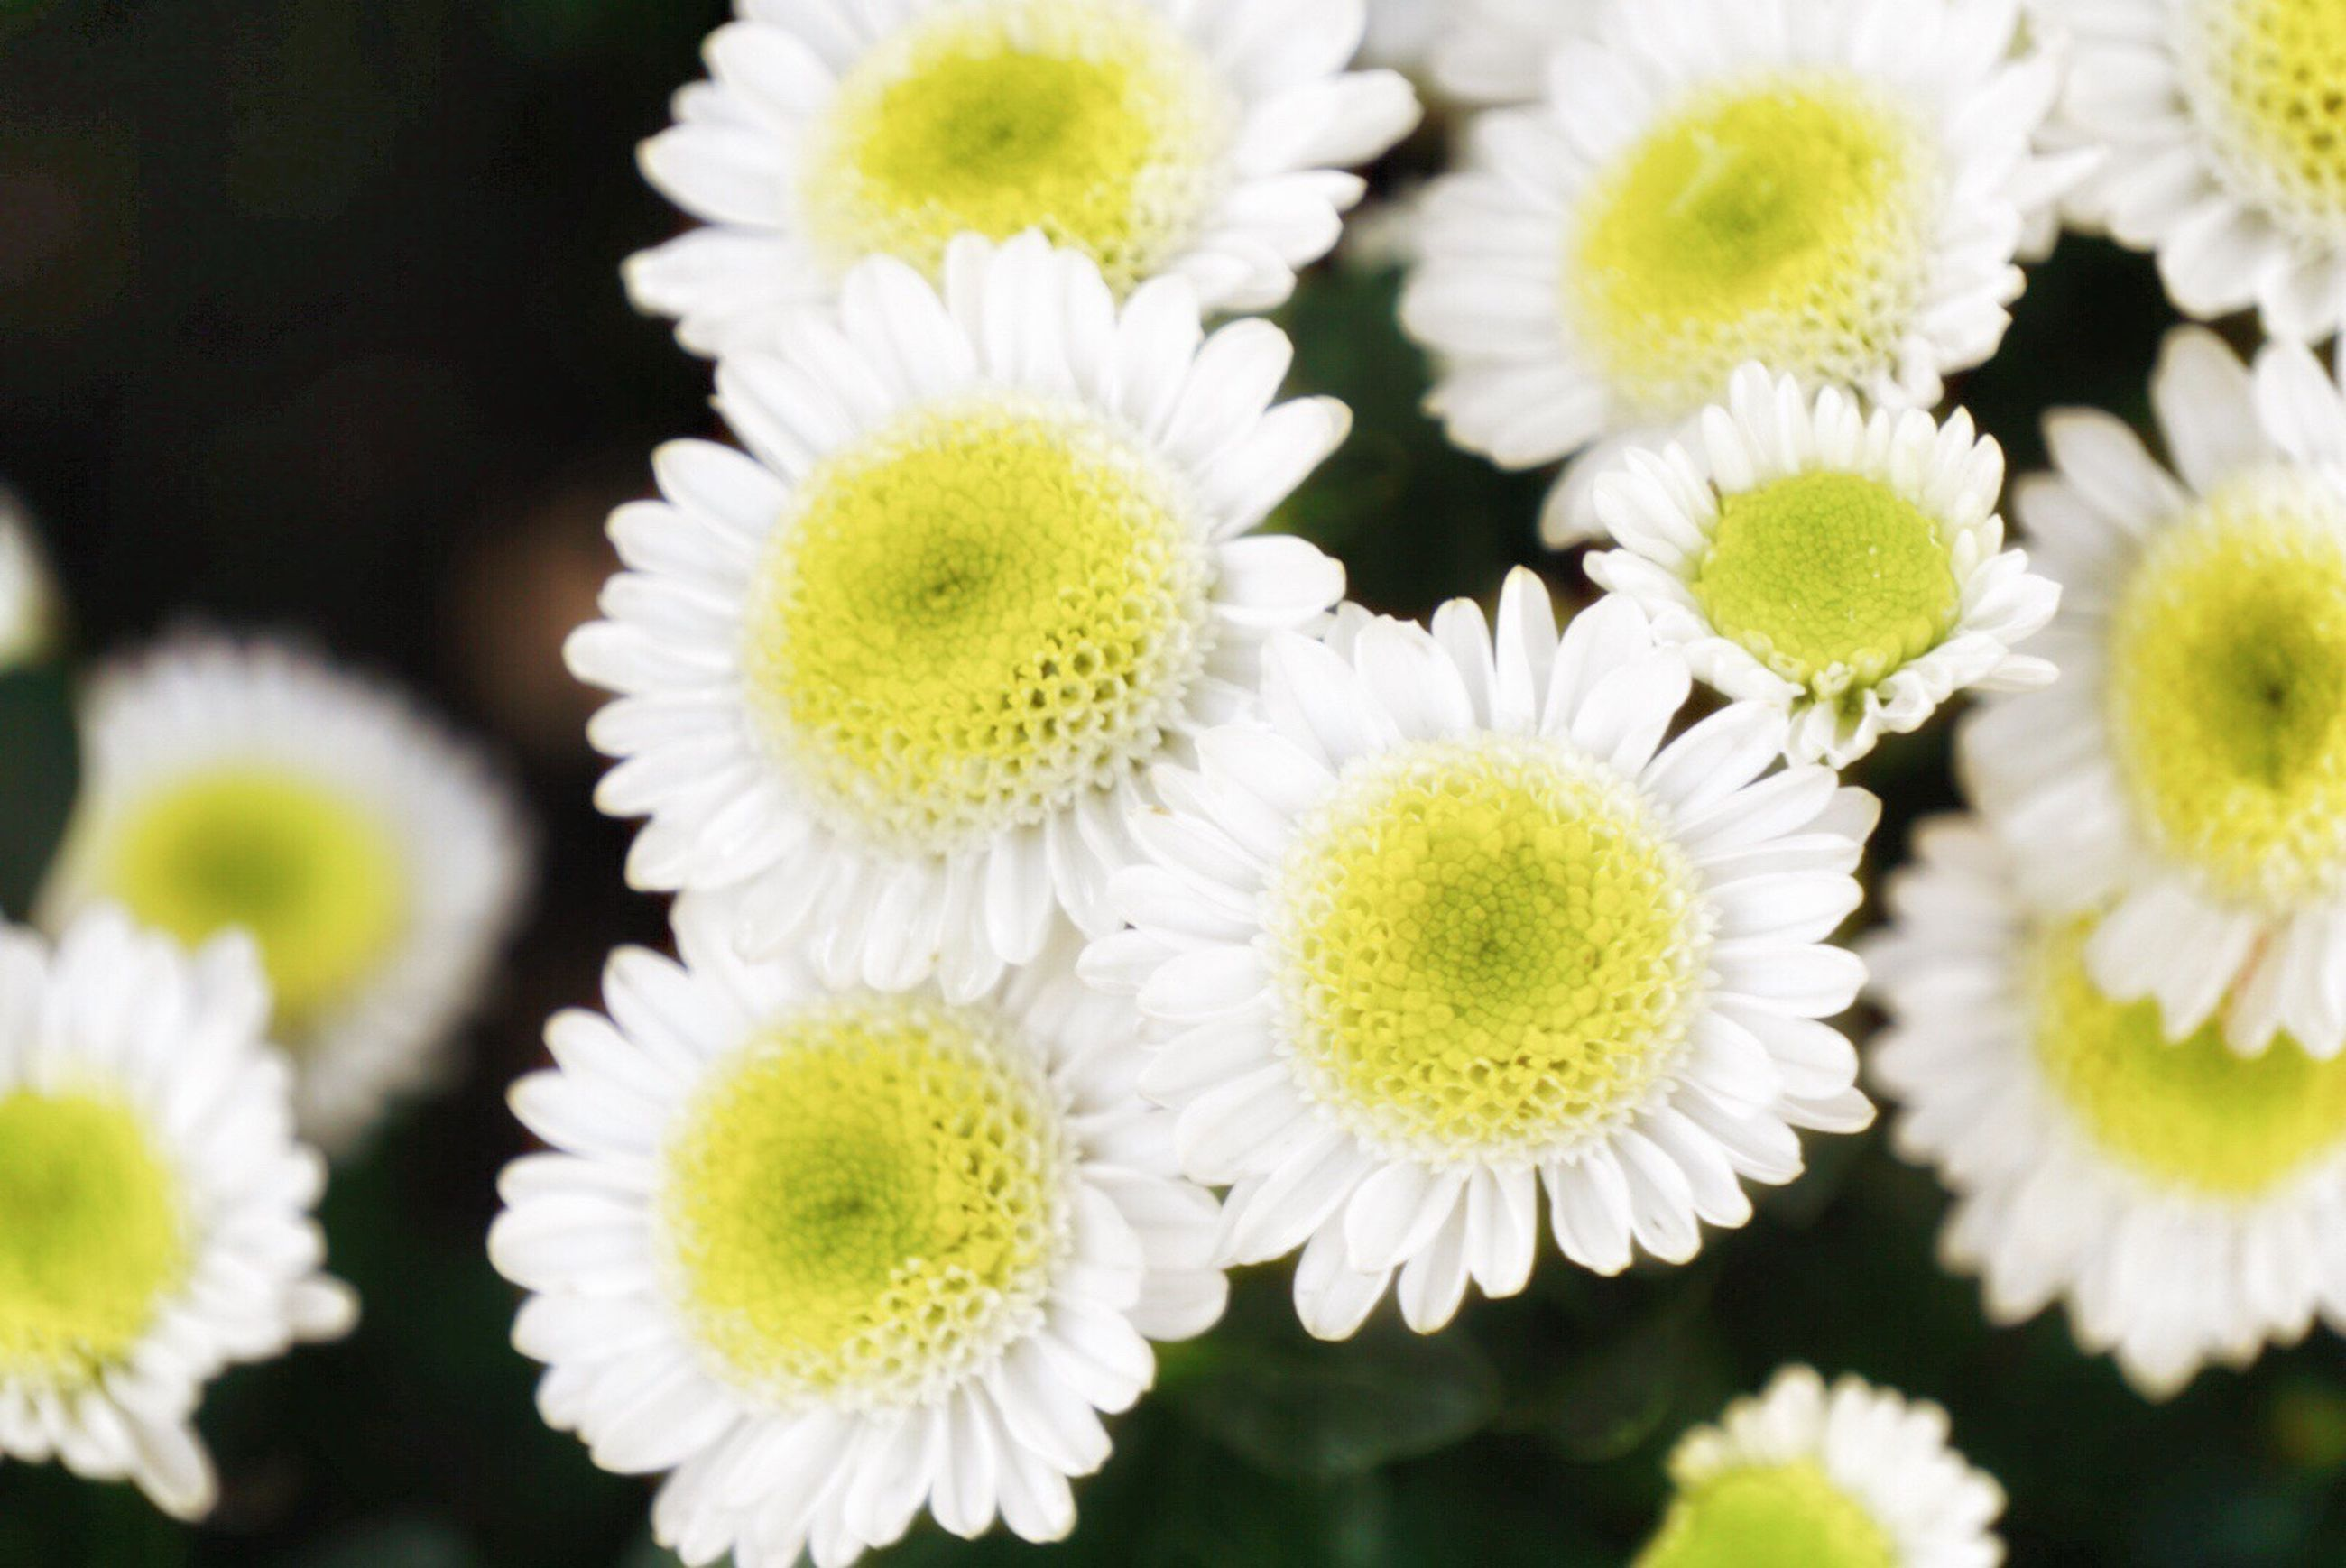 flower, white color, nature, fragility, beauty in nature, flower head, freshness, growth, plant, no people, outdoors, close-up, day